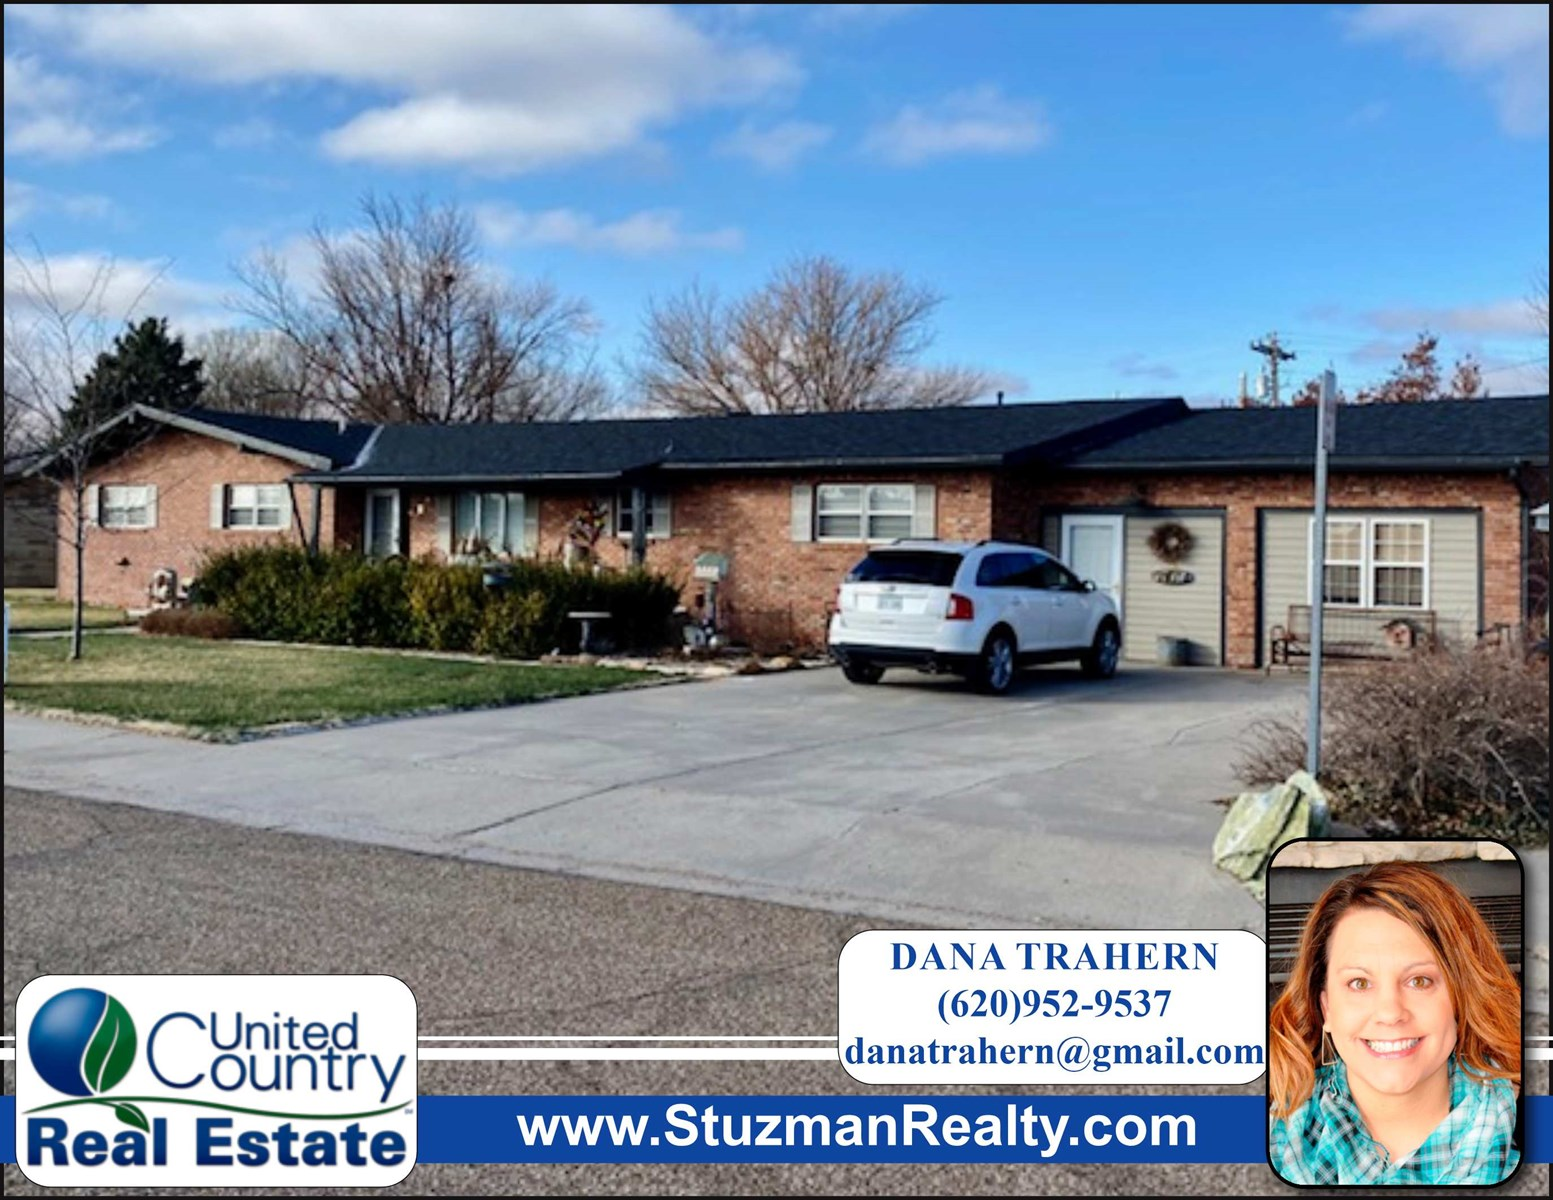 CHARISMATIC, LOVELY HOME FOR SALE IN ULYSSES, KS